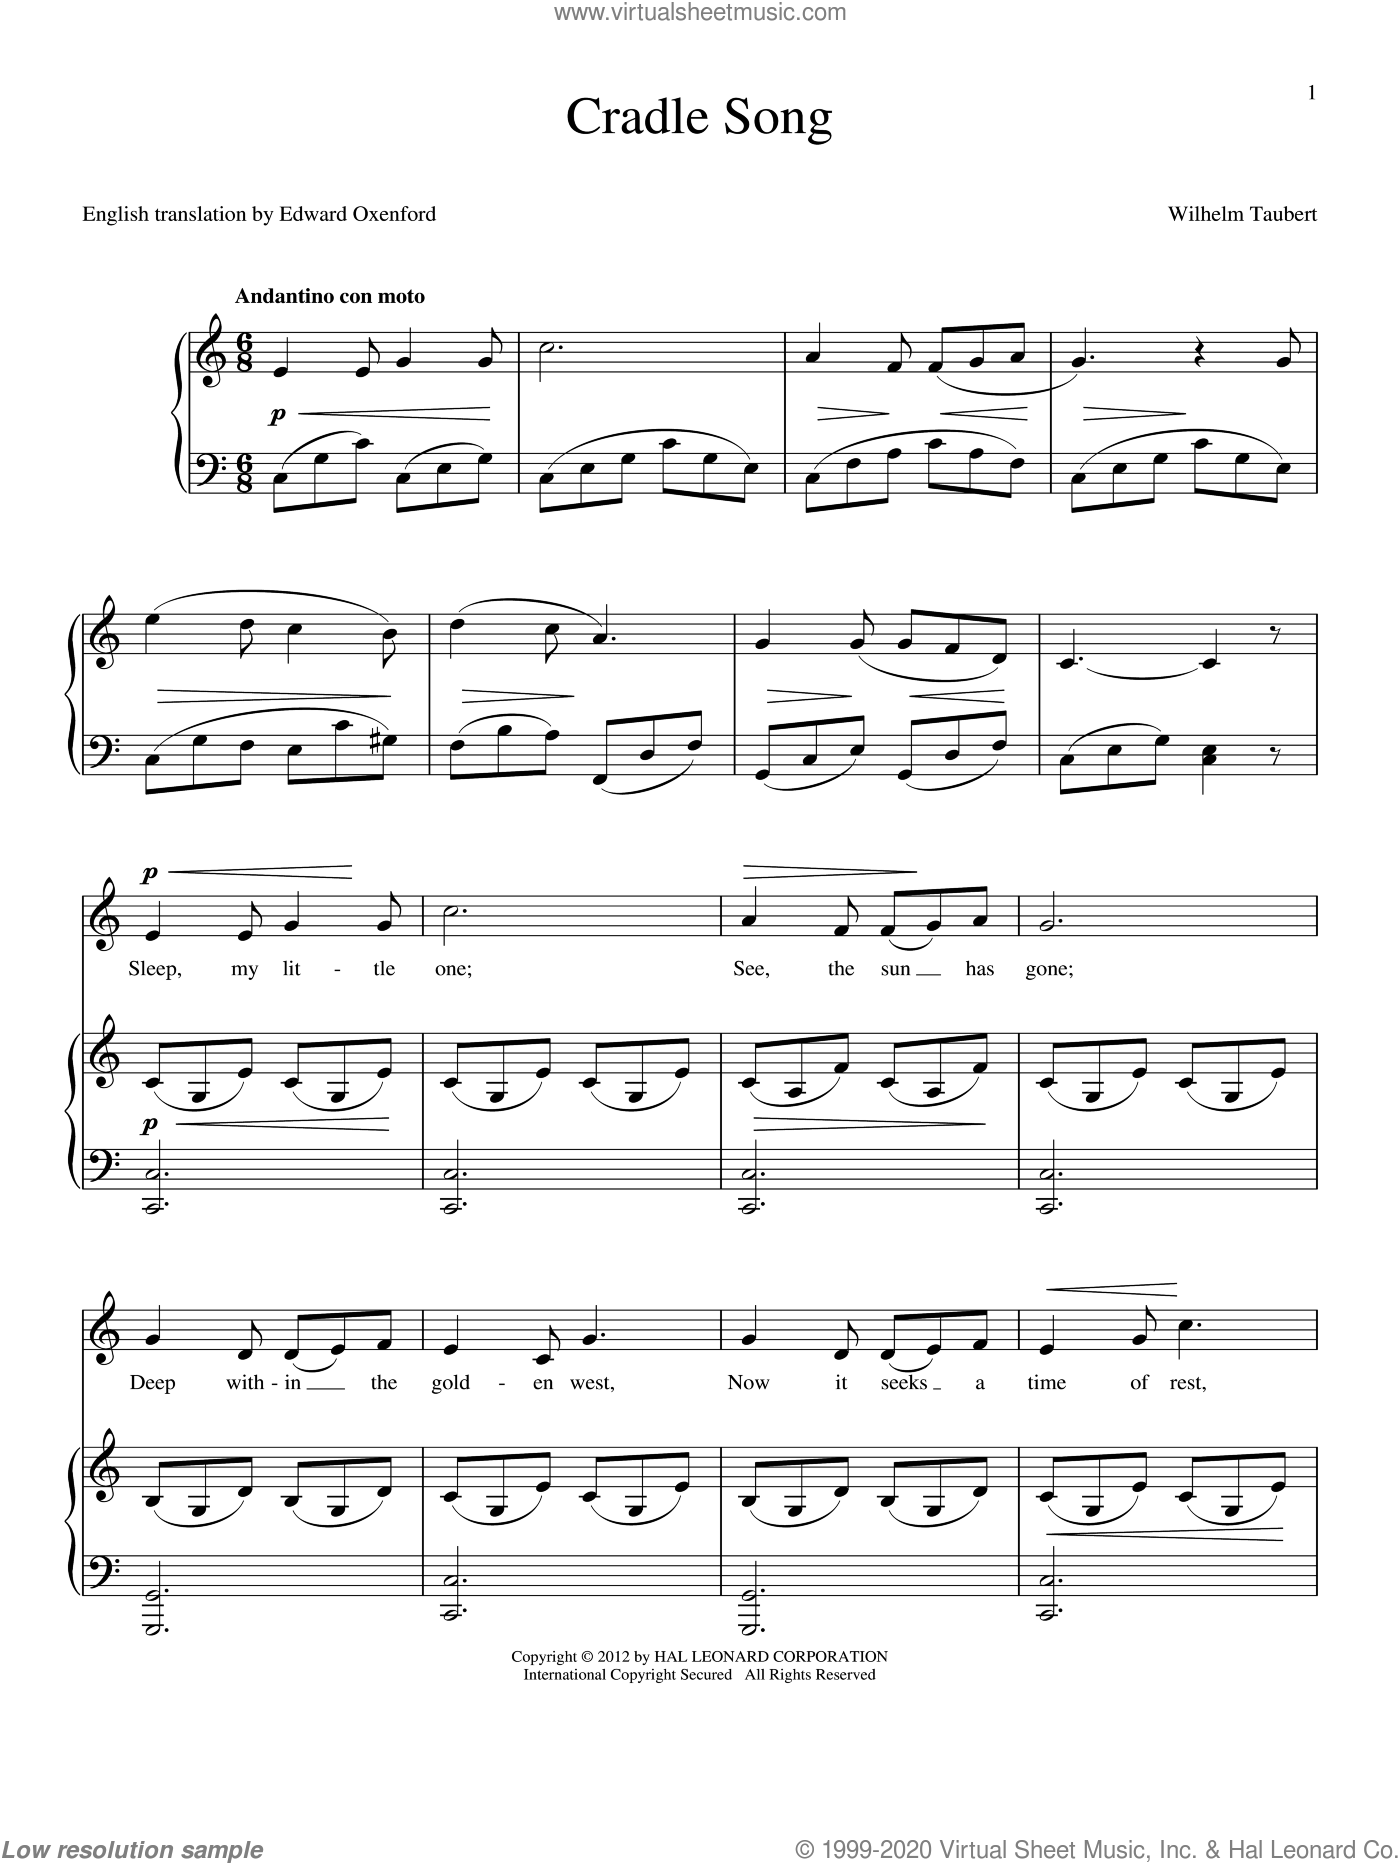 Cradle Song sheet music for voice and piano by Wilhelm Taubert, intermediate voice. Score Image Preview.